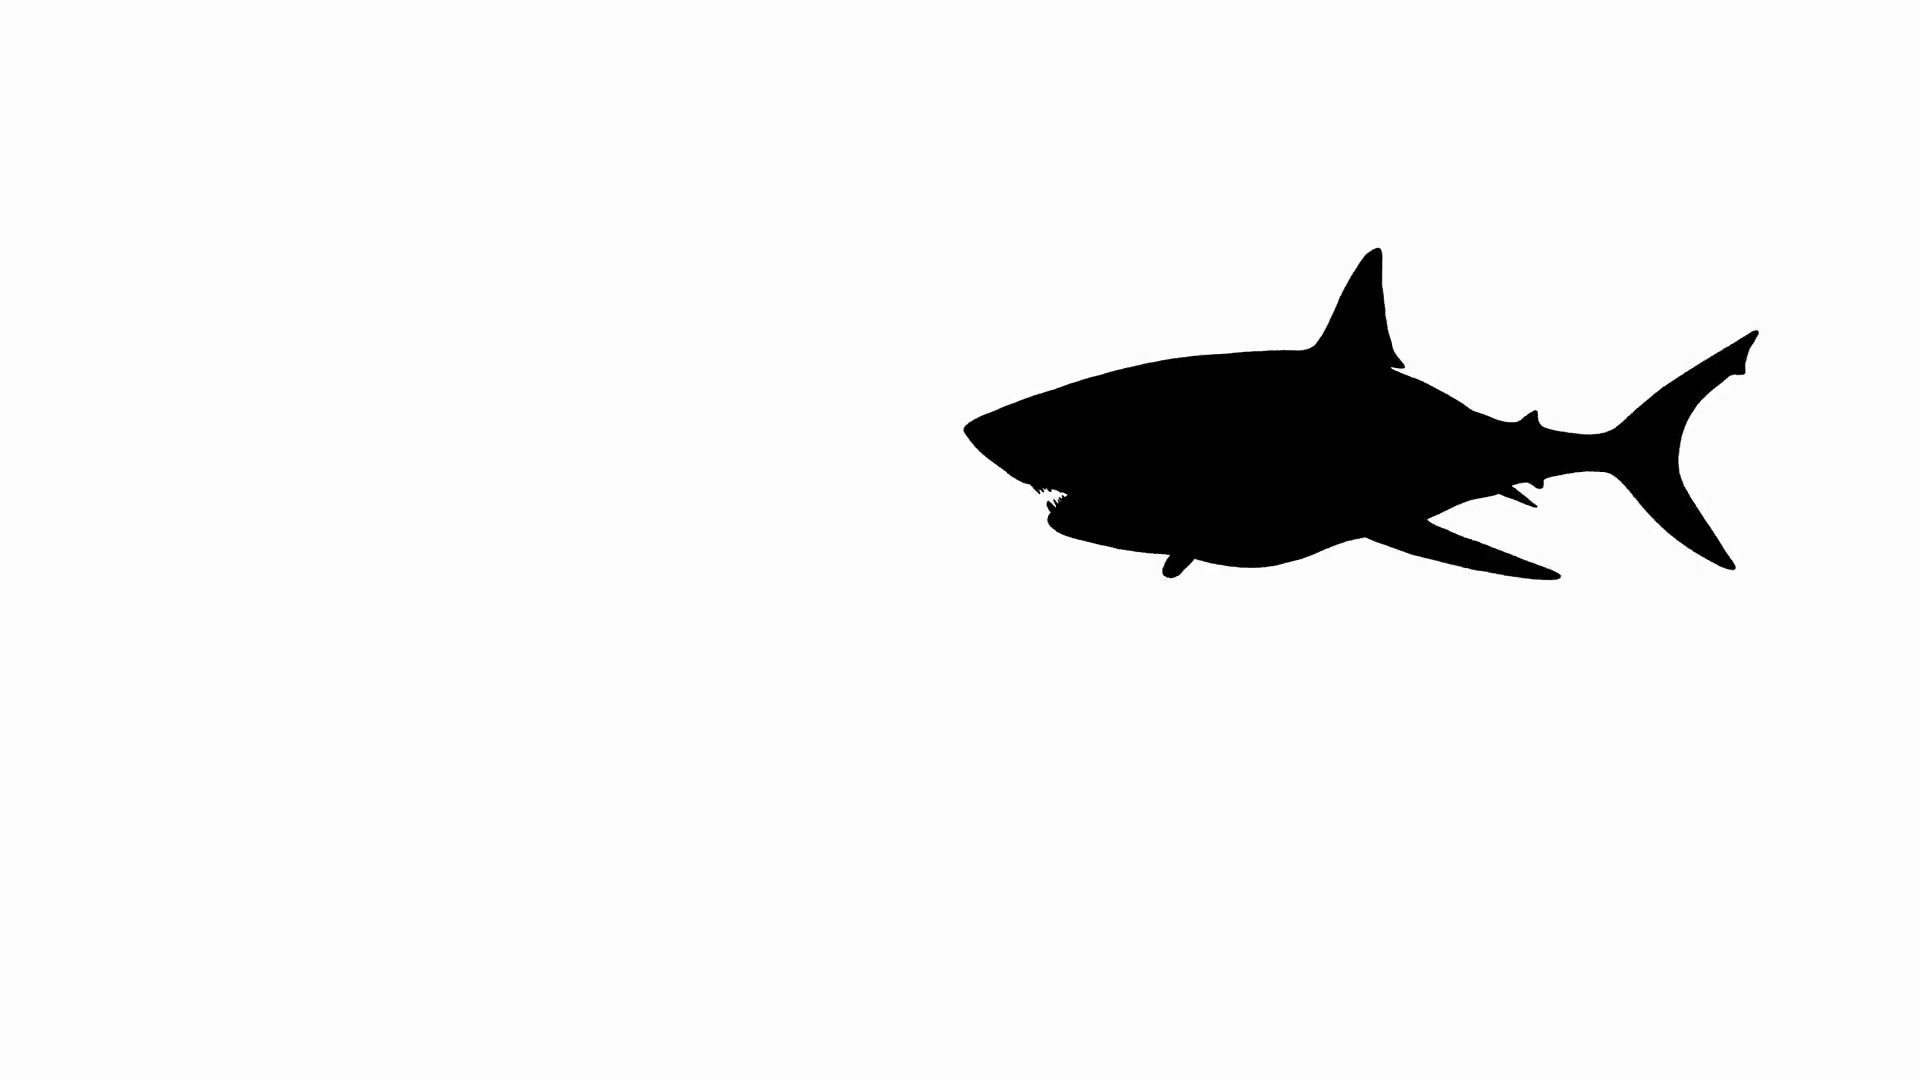 1920x1080 Animated Silhouette Of A Great White Shark Attack. Includes Alpha